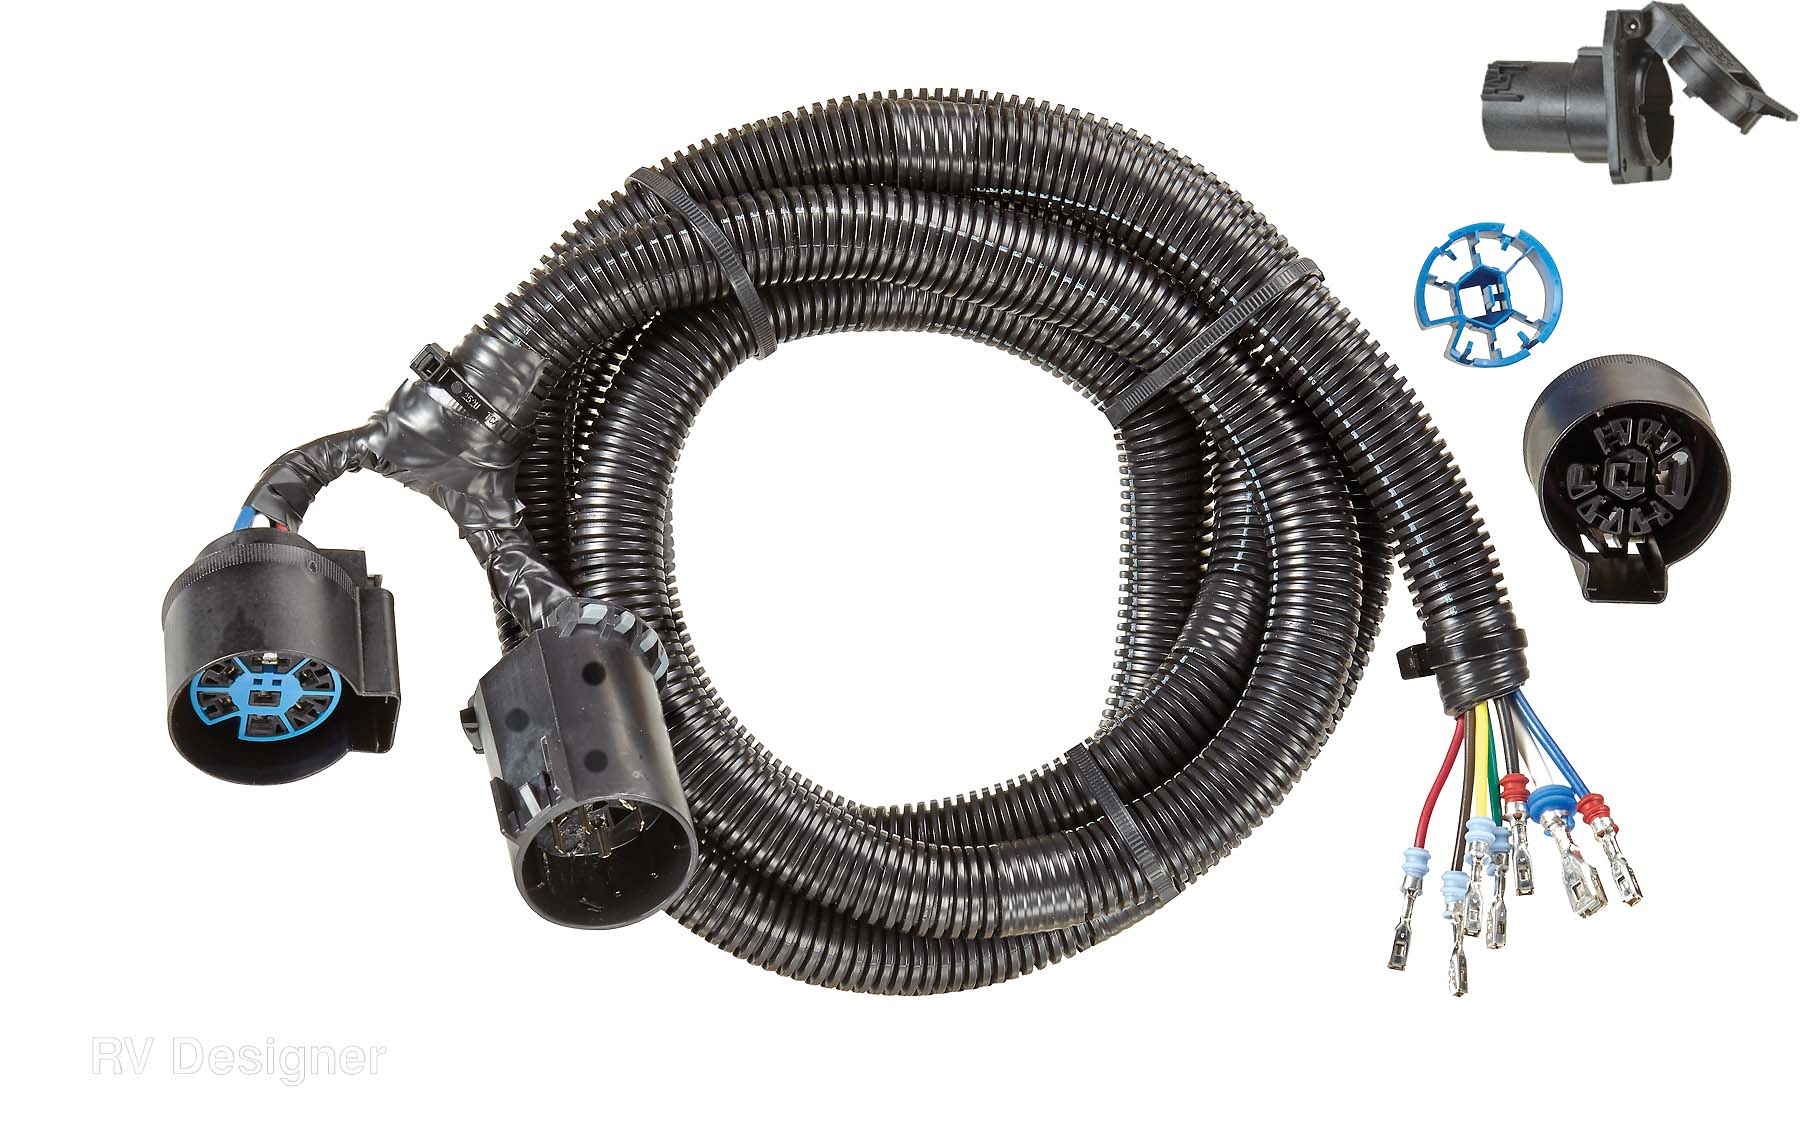 rv designer trailer wiring connector kit p935 end type t connector walmart canada  [ 2000 x 2000 Pixel ]